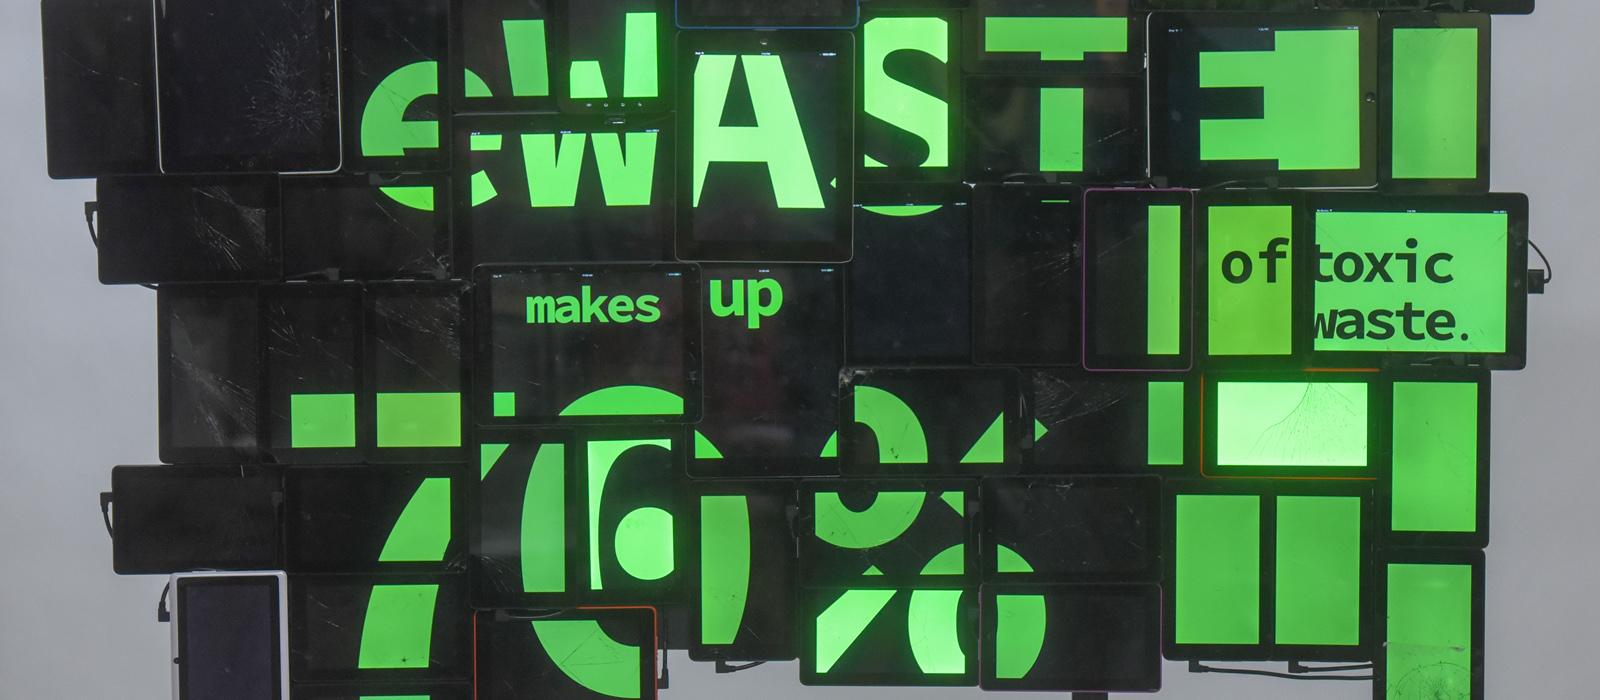 "A photo of an art installation made up of recycled iPads, and other similar devices with neon green and black imagery indicating that ""eWaste makes up 70% of toxic waste."""